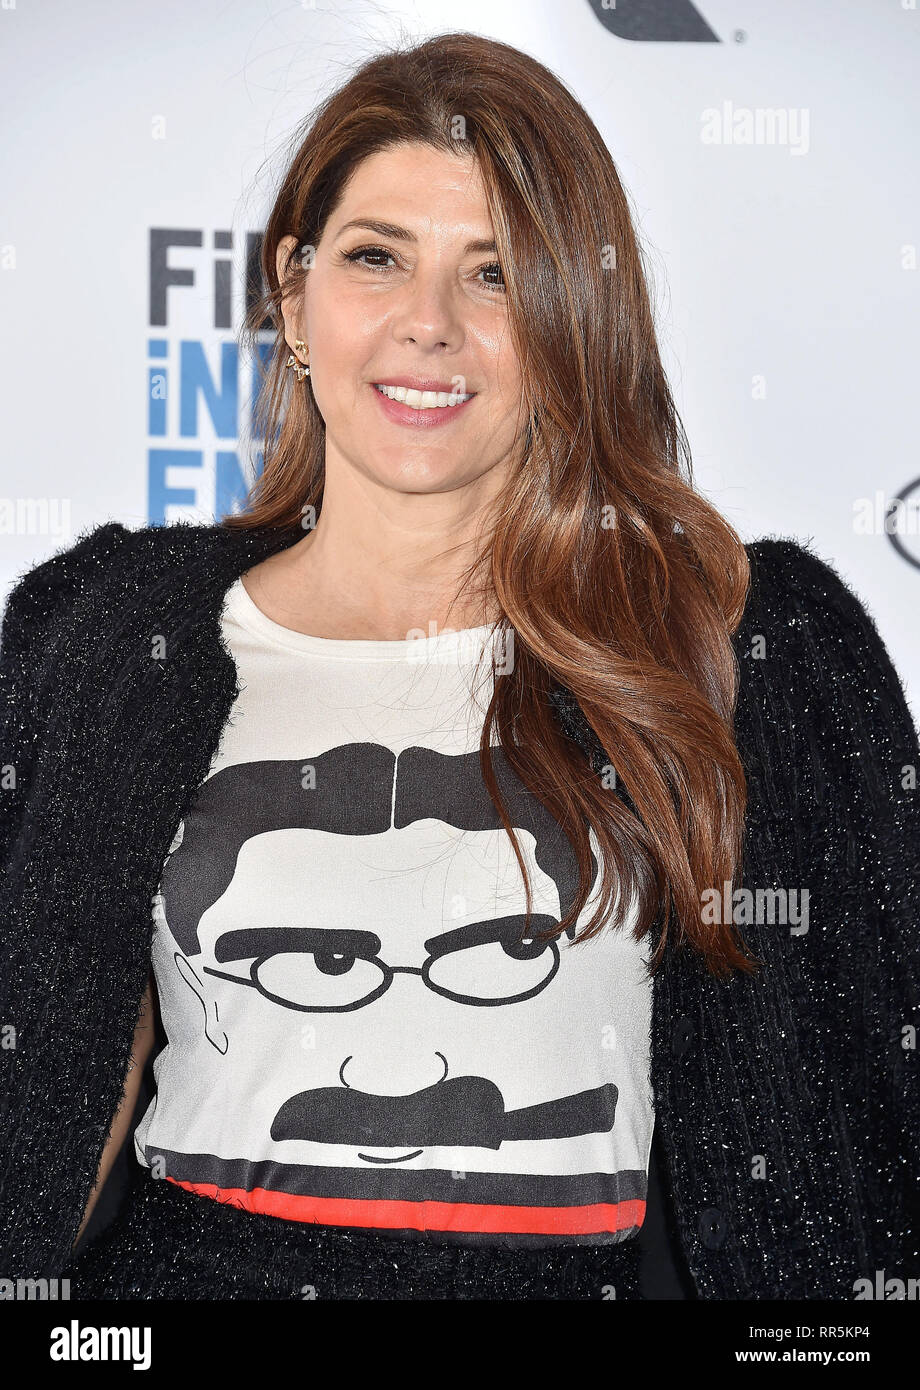 SANTA MONICA, CA - FEBRUARY 23: Marisa Tomei attends the 2019 Film Independent Spirit Awards on the beach on February 23, 2019 in Santa Monica, Califo - Stock Image